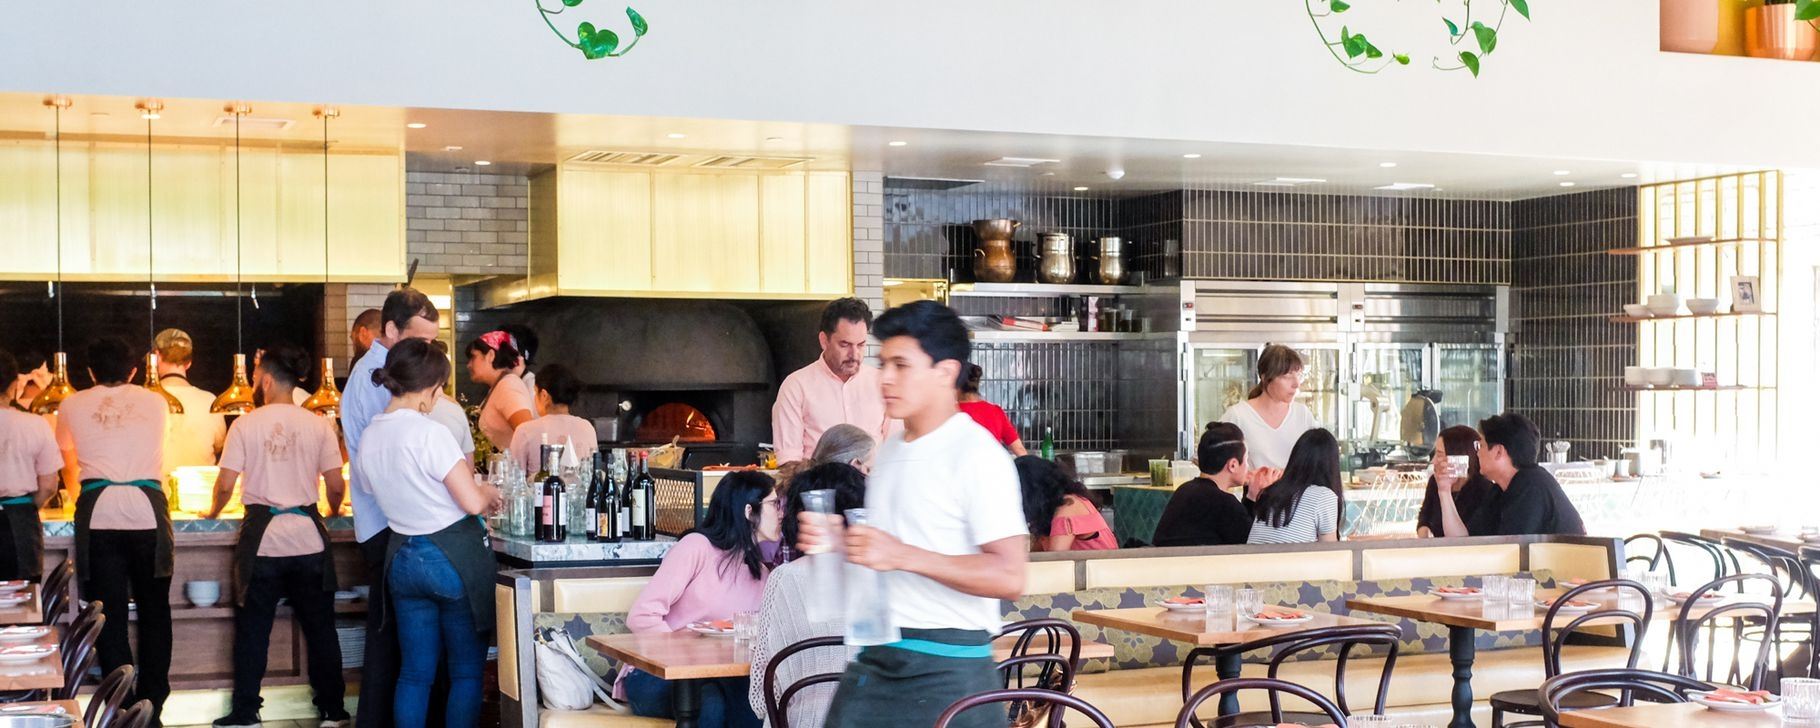 Sorry New York, California Is the Best Place to Eat Now